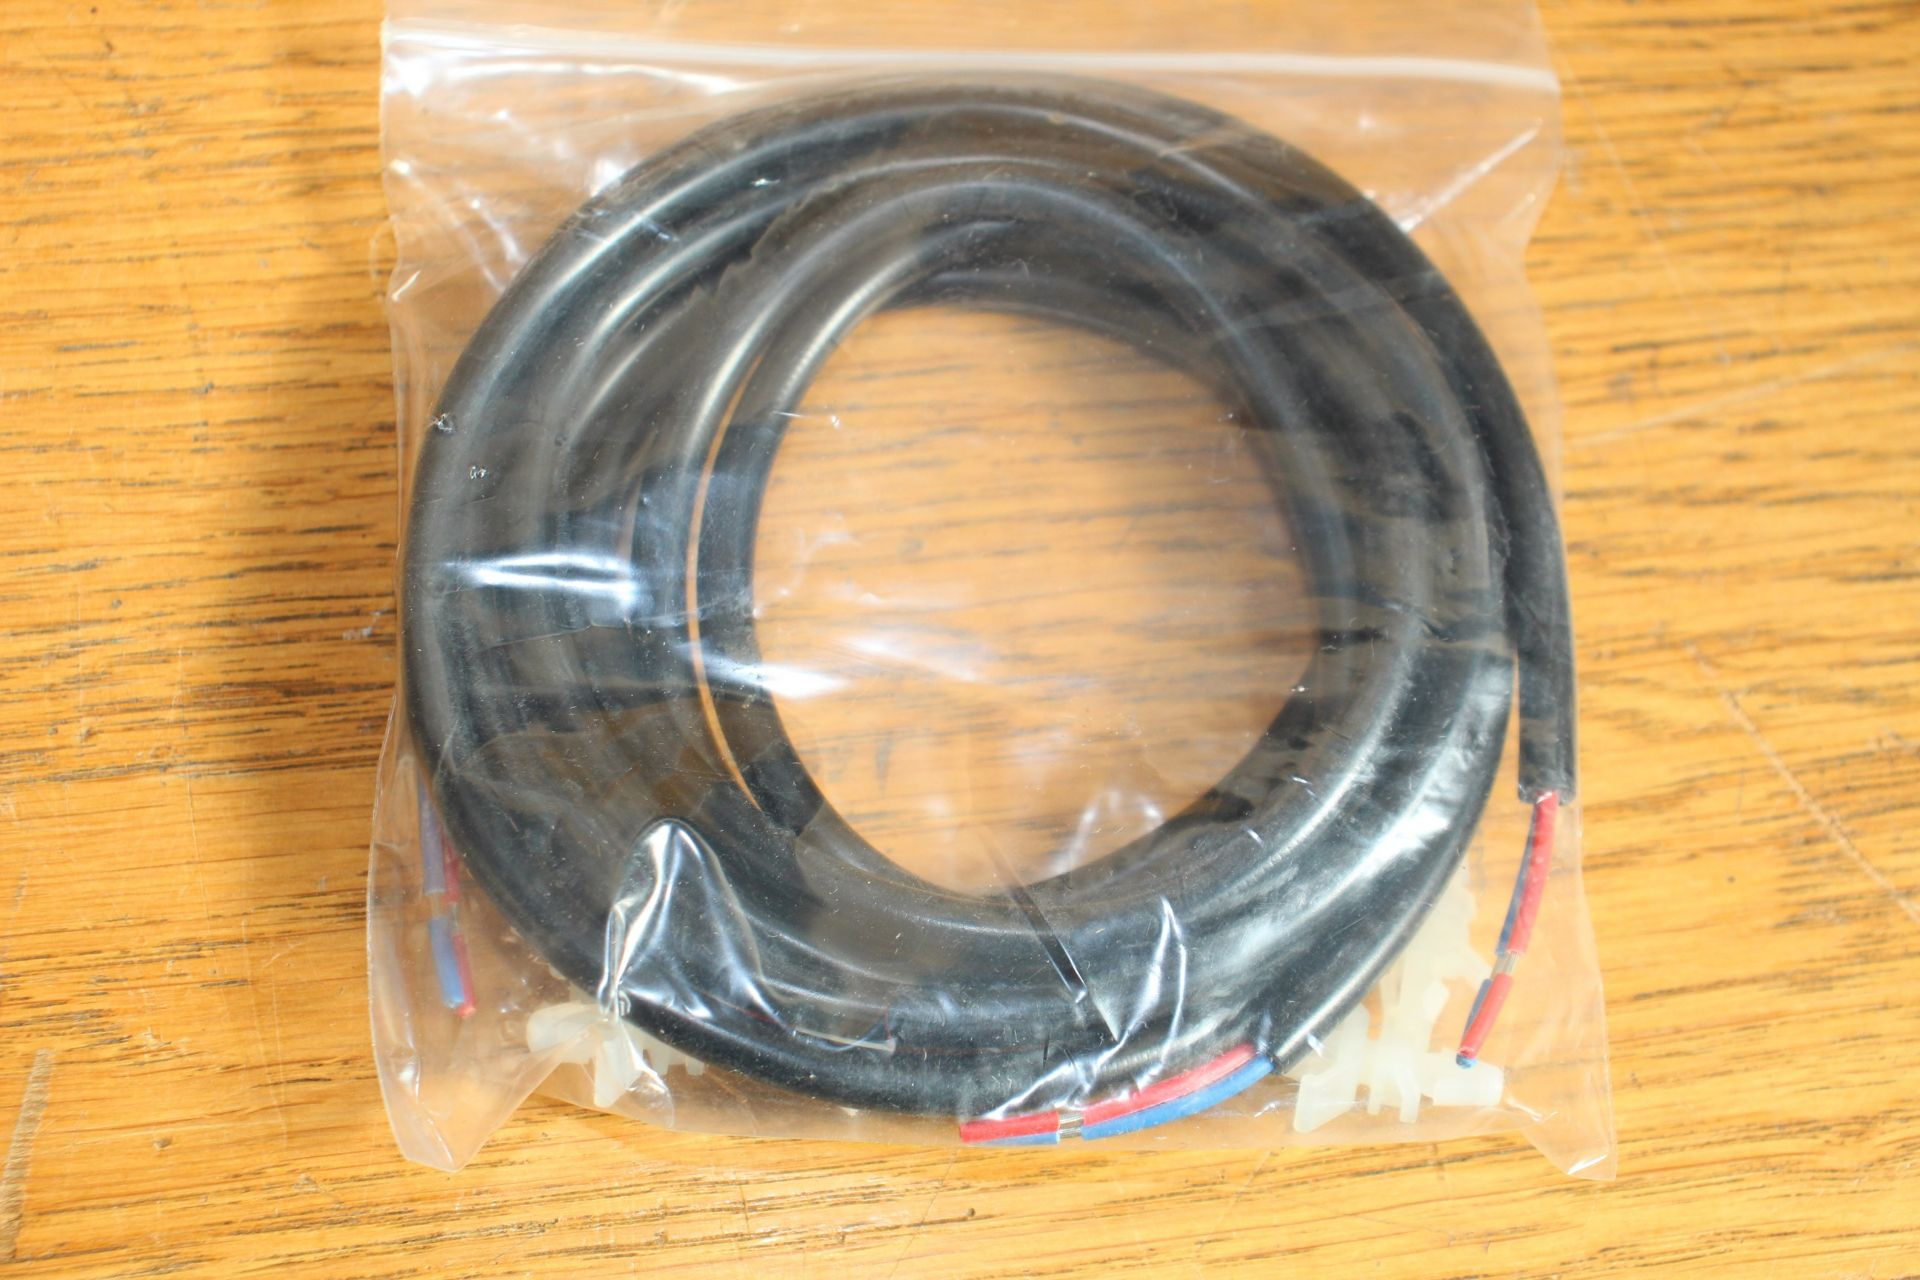 COLLECTION ONLY: A large quantity of assorted as new cables and plugs. - Image 11 of 11